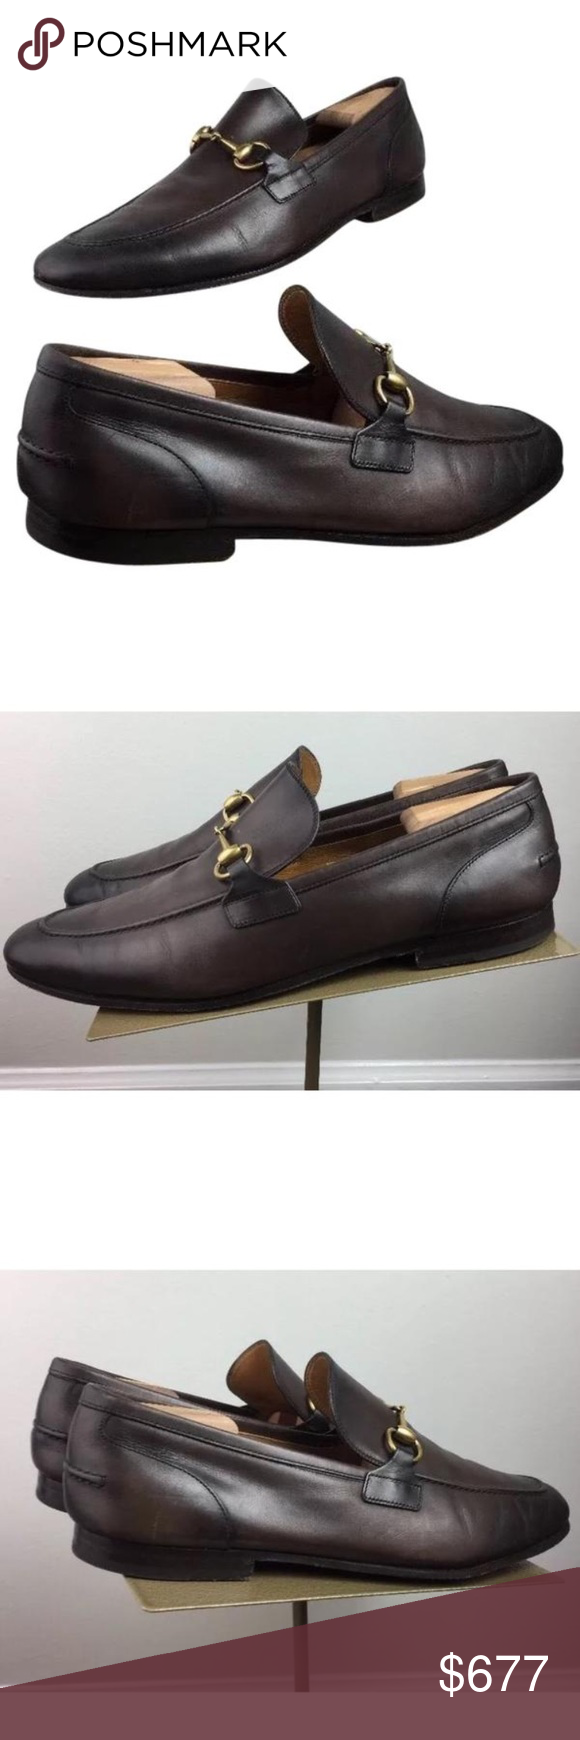 468509e1c Gucci loafer Gucci Jordaan Brown Burnished Toe Bit Loafer Men's Leather  Shoes Size 11G / 12US Rare size to find Shoes Loafers & Slip-Ons